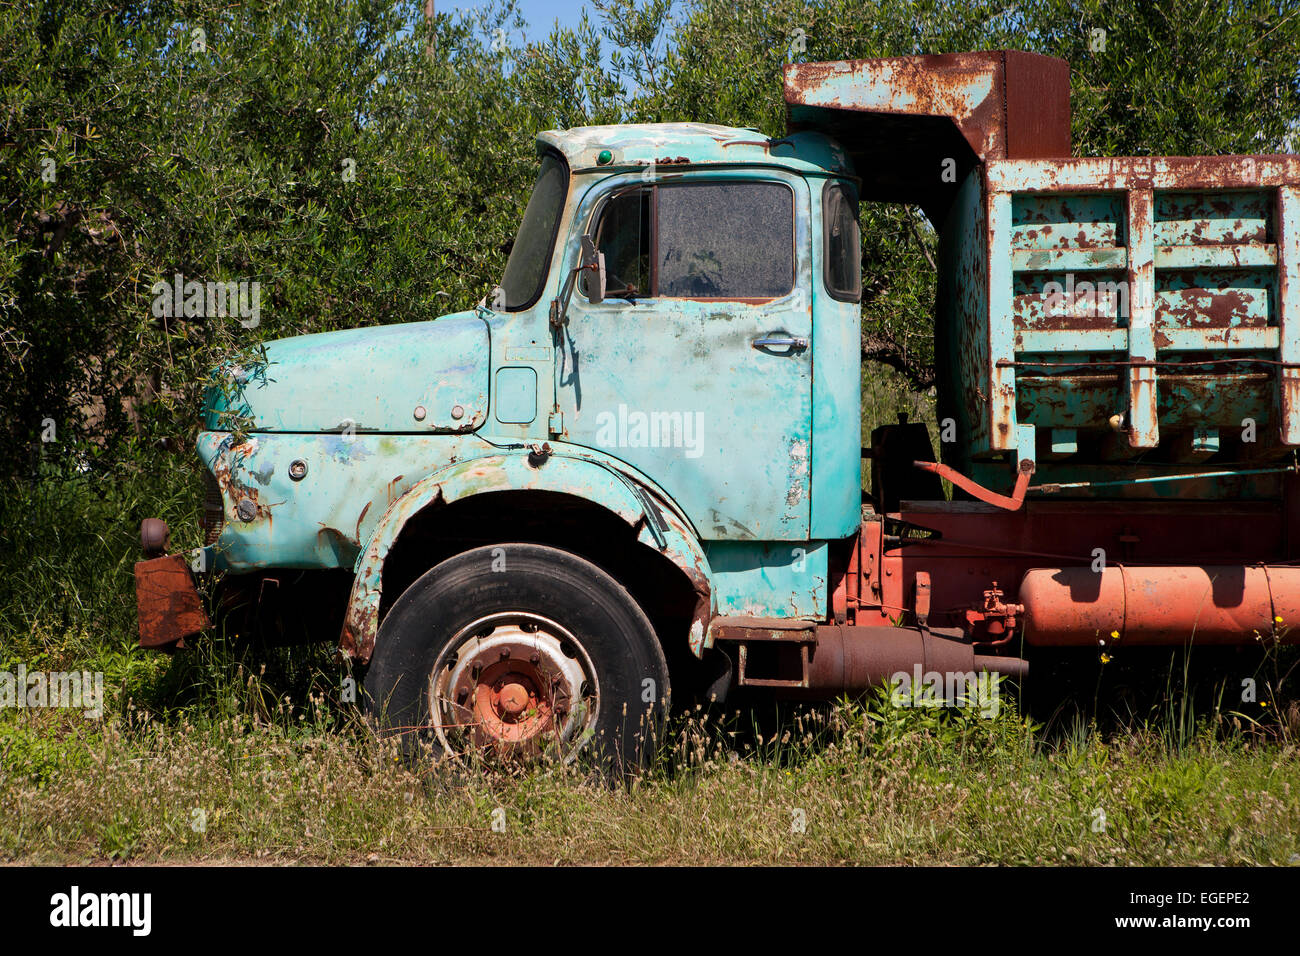 Rusty Old Trucks Stock Photos & Rusty Old Trucks Stock Images - Alamy